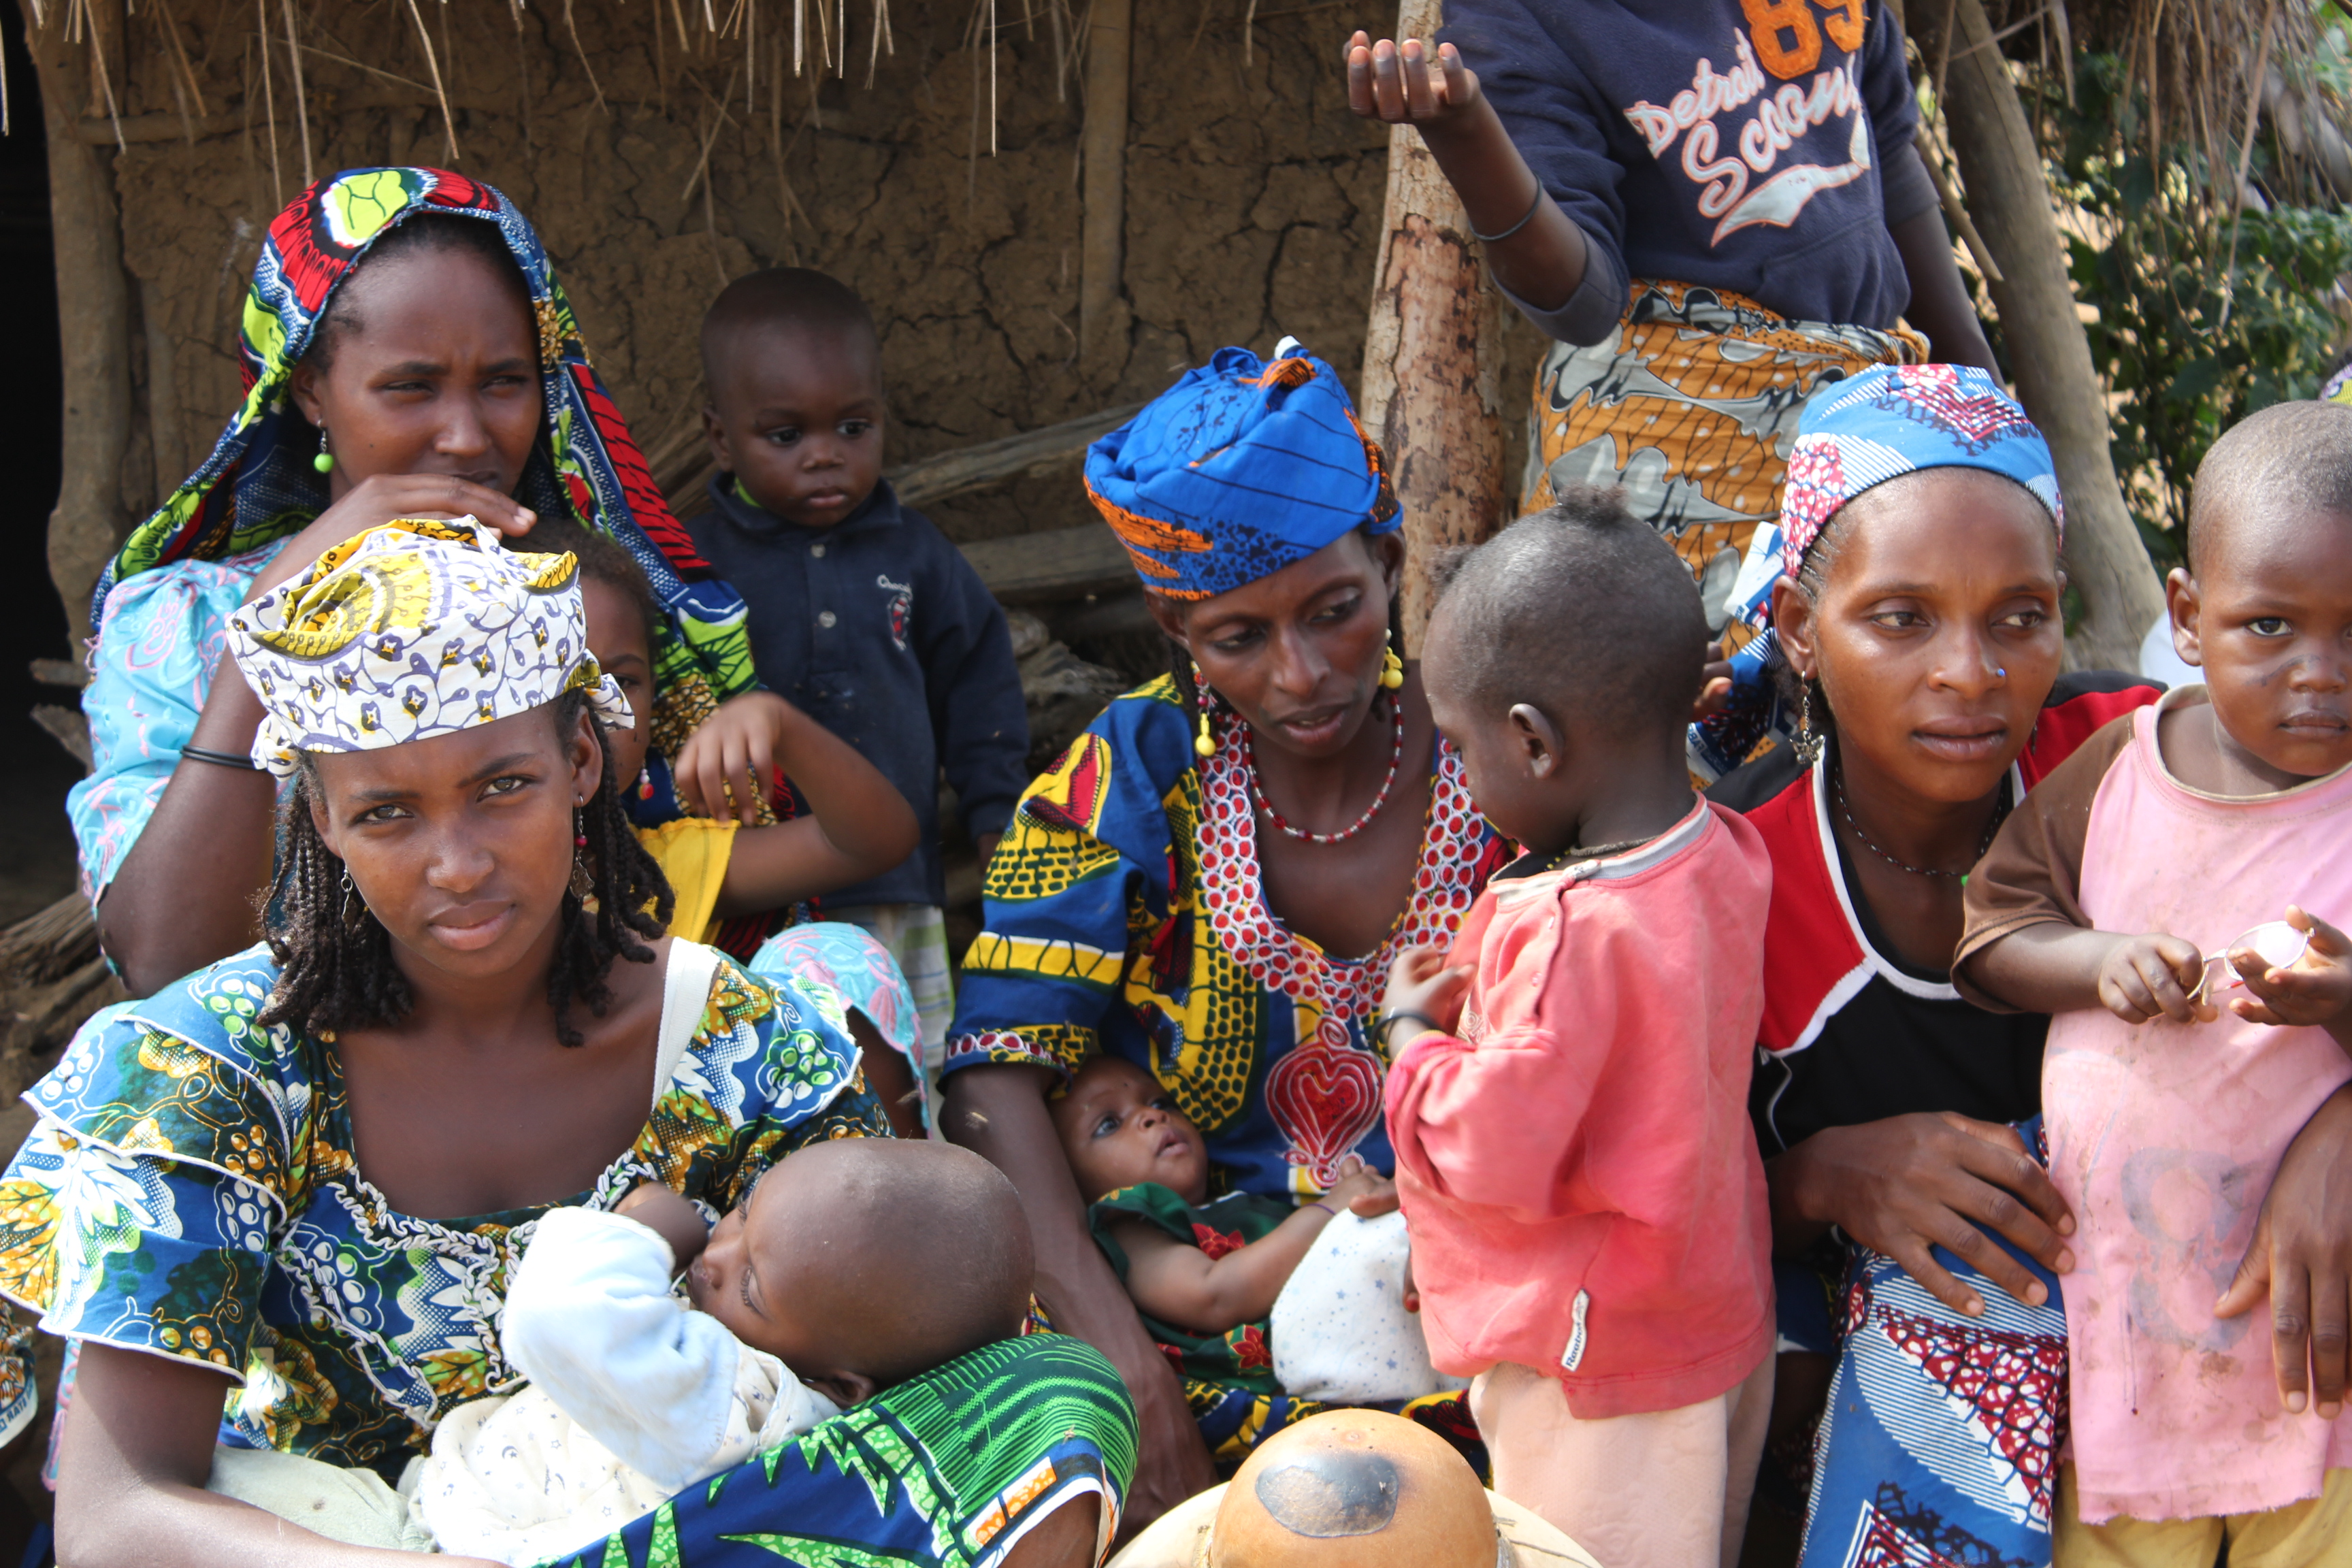 A group of four black women, wearing colorful dresses and headscarves, are taking care of five children. The woman in the bottom left corner of the photo is looking at the camera while holding a sleeping baby. Behind her, another woman, a blanket on her head, wearing a green earring, holds a child in her lap. Next to them is another woman holding a child, while talking to another who is standing and looking at her. Another woman, in the right corner of the picture, is hugging a child, who is standing, looking at the camera, wearing a pink and brown t-shirt.